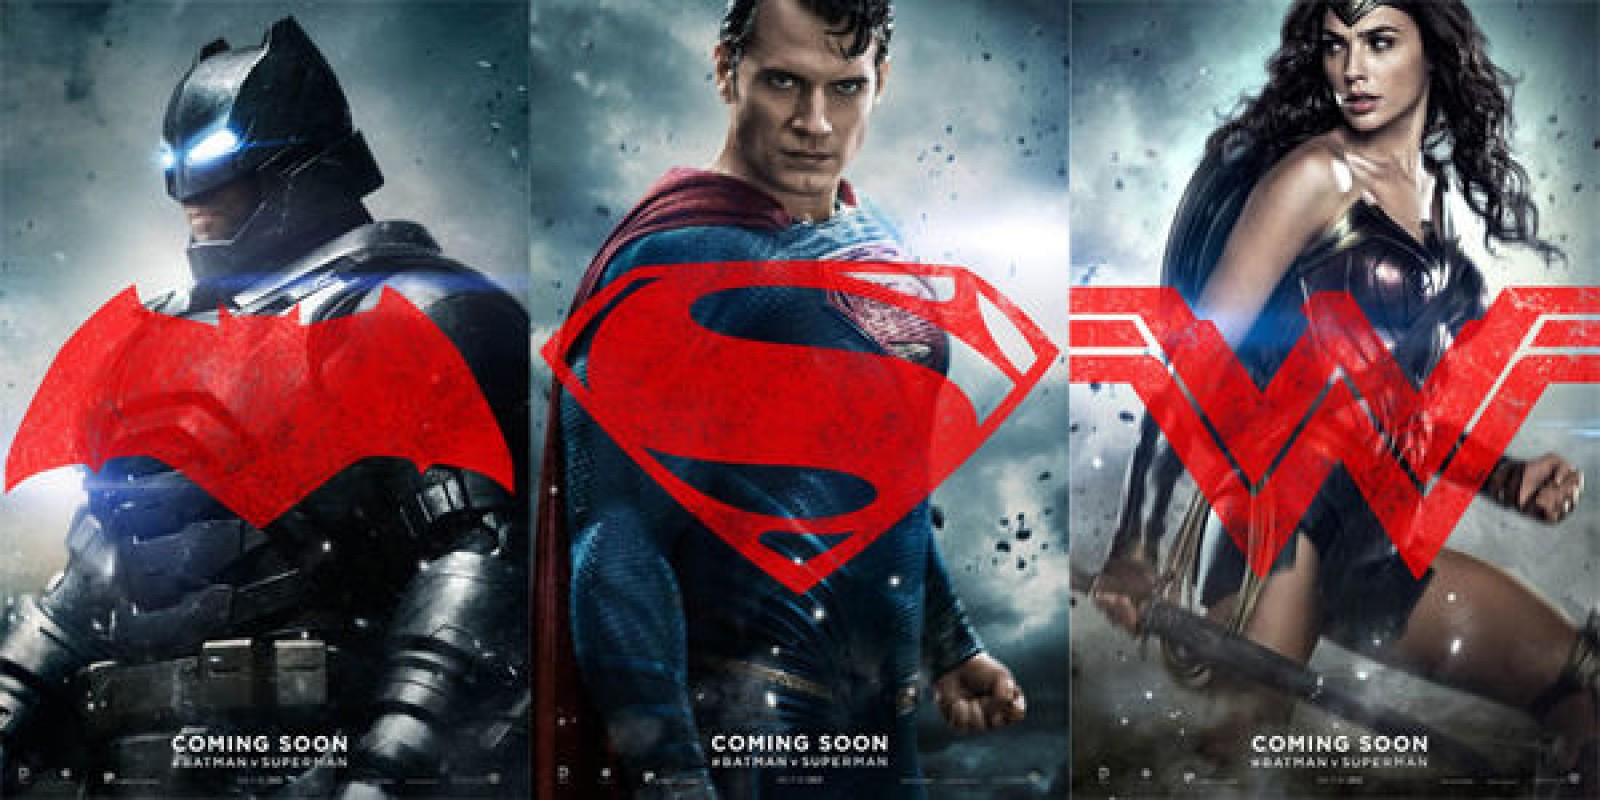 batman-v-superman-character-posters.jpg